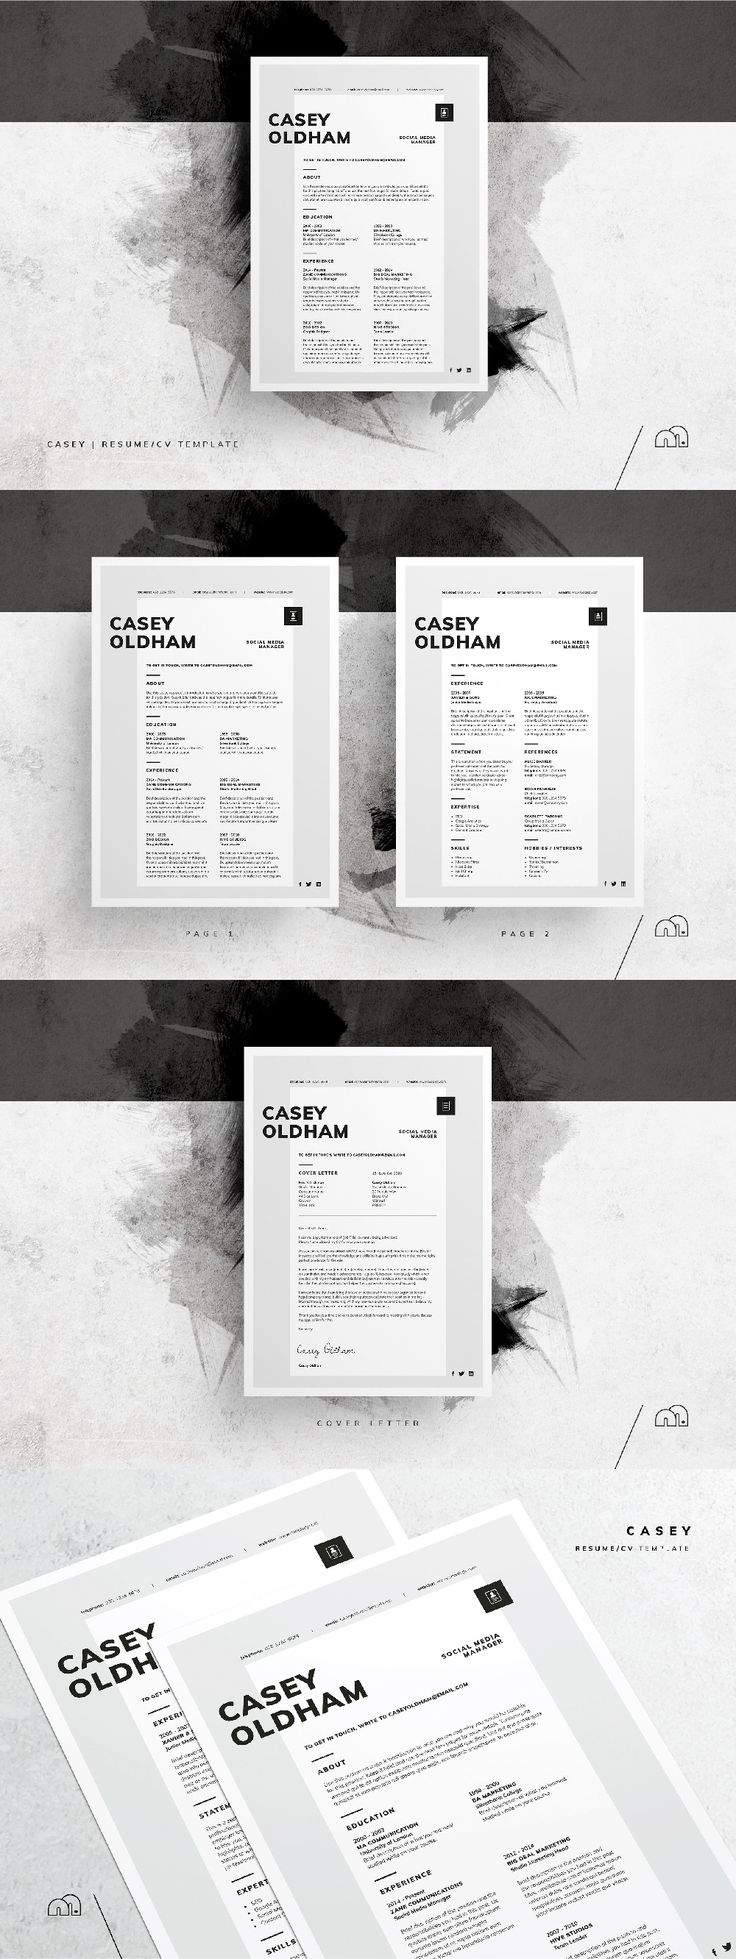 Cv Templates Pdf%0A Resume   CV Template  Casey For those looking for a professional template    u    Casey